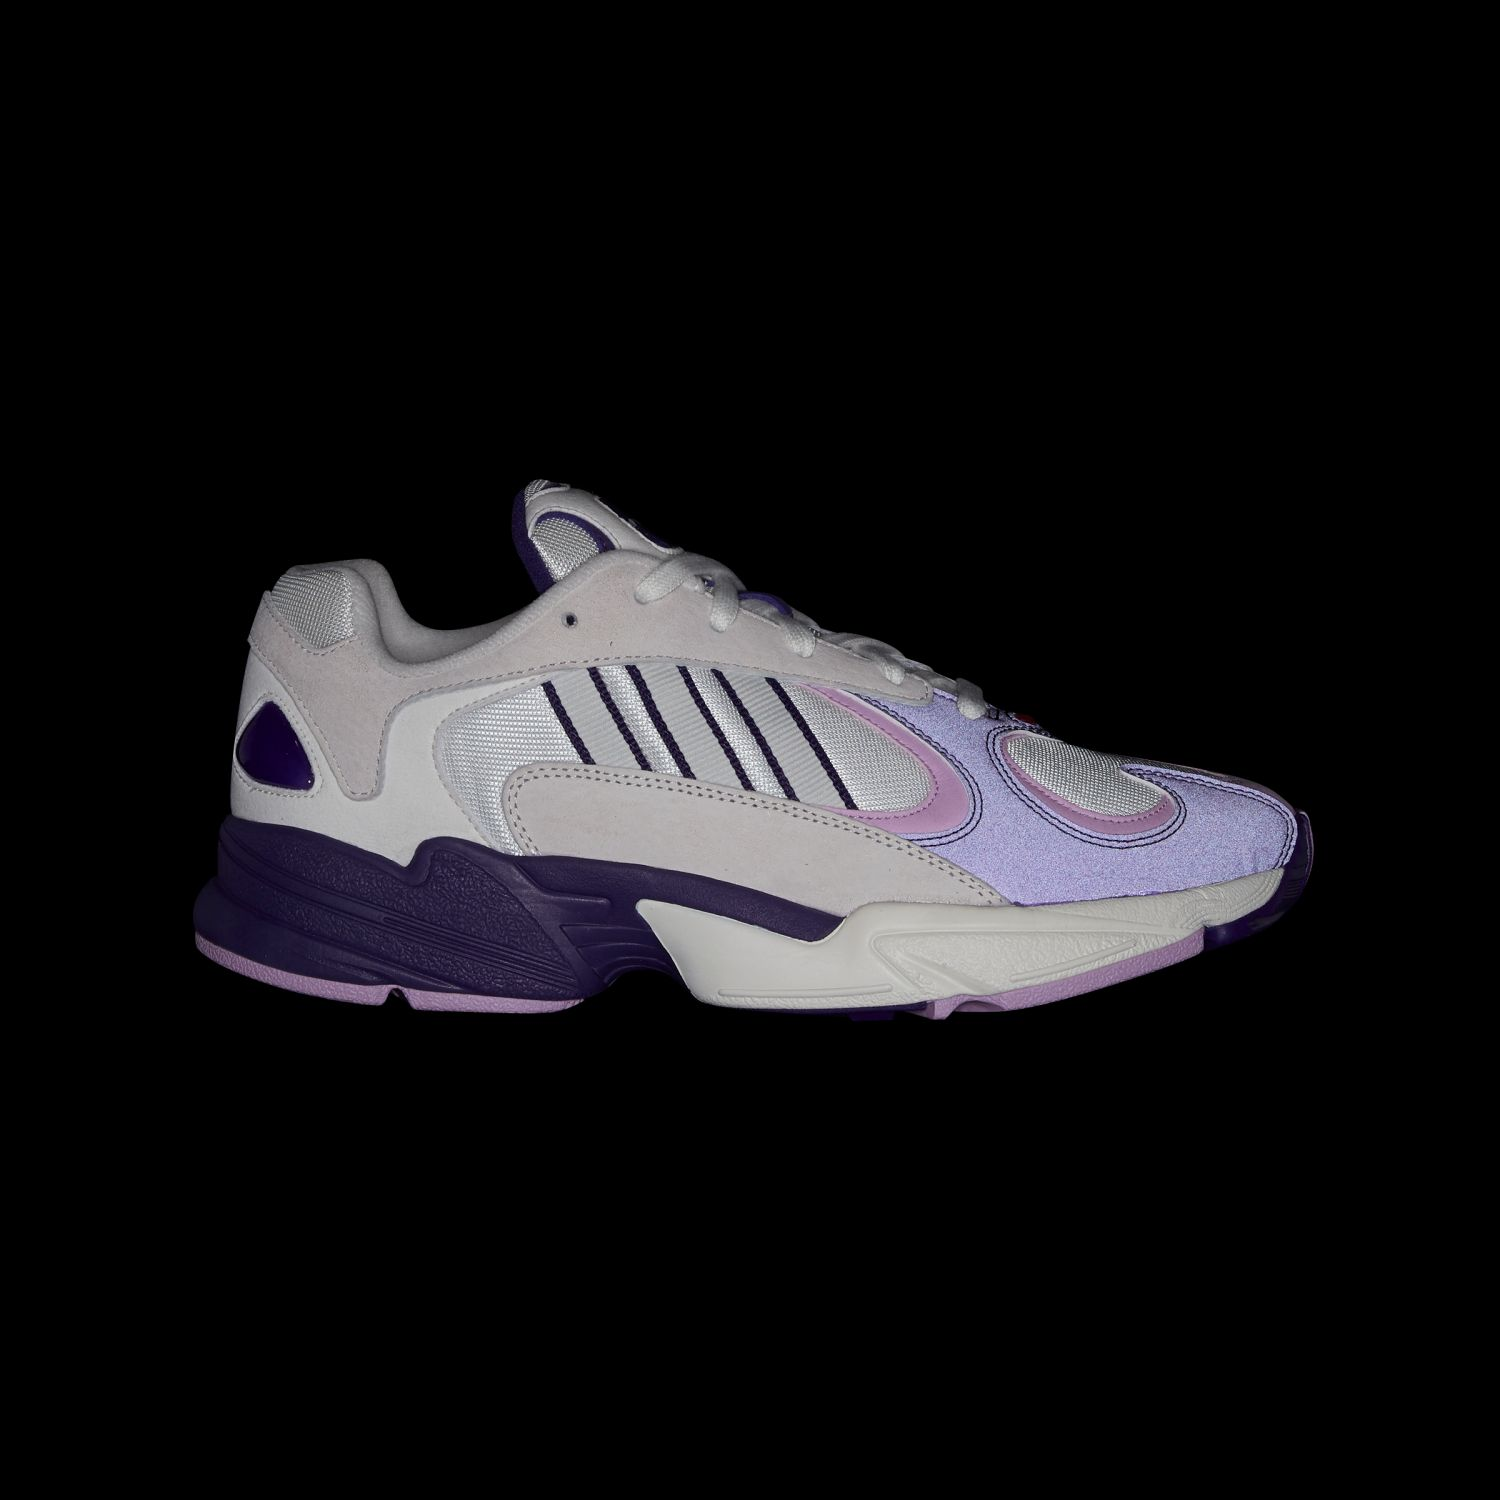 adidas-dragon-ball-z-frieza-yung-1-d97048-release-20180929